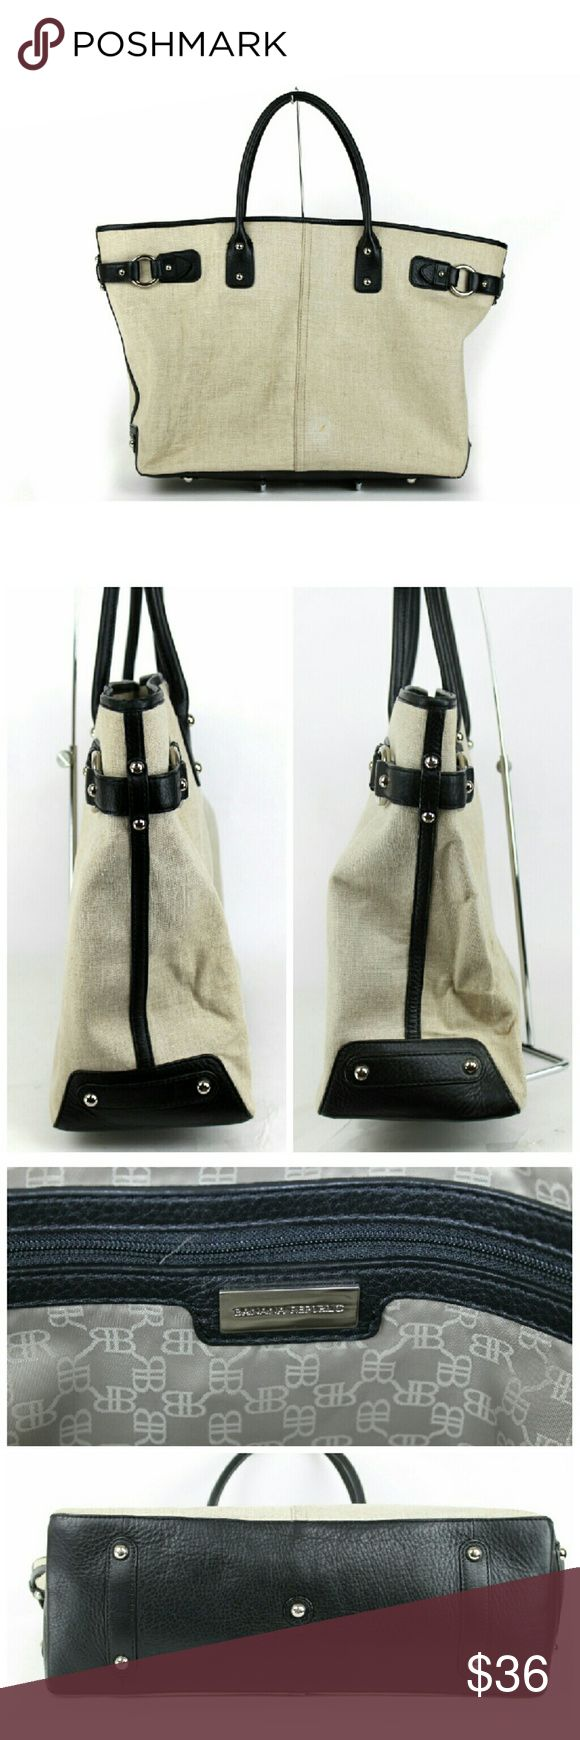 """Banana Republic tote bag Banana Republic tote bag .  100% linen with genuine leather trim. Beige/black. Silver tone hardware. Lined interior with large zippered pocket and 2 smaller open pockets. Few faint marks on exterior and 2 small stains on interior lining. Approximate measurements 22"""" x 13"""" x 6"""""""". Banana Republic Bags Totes"""